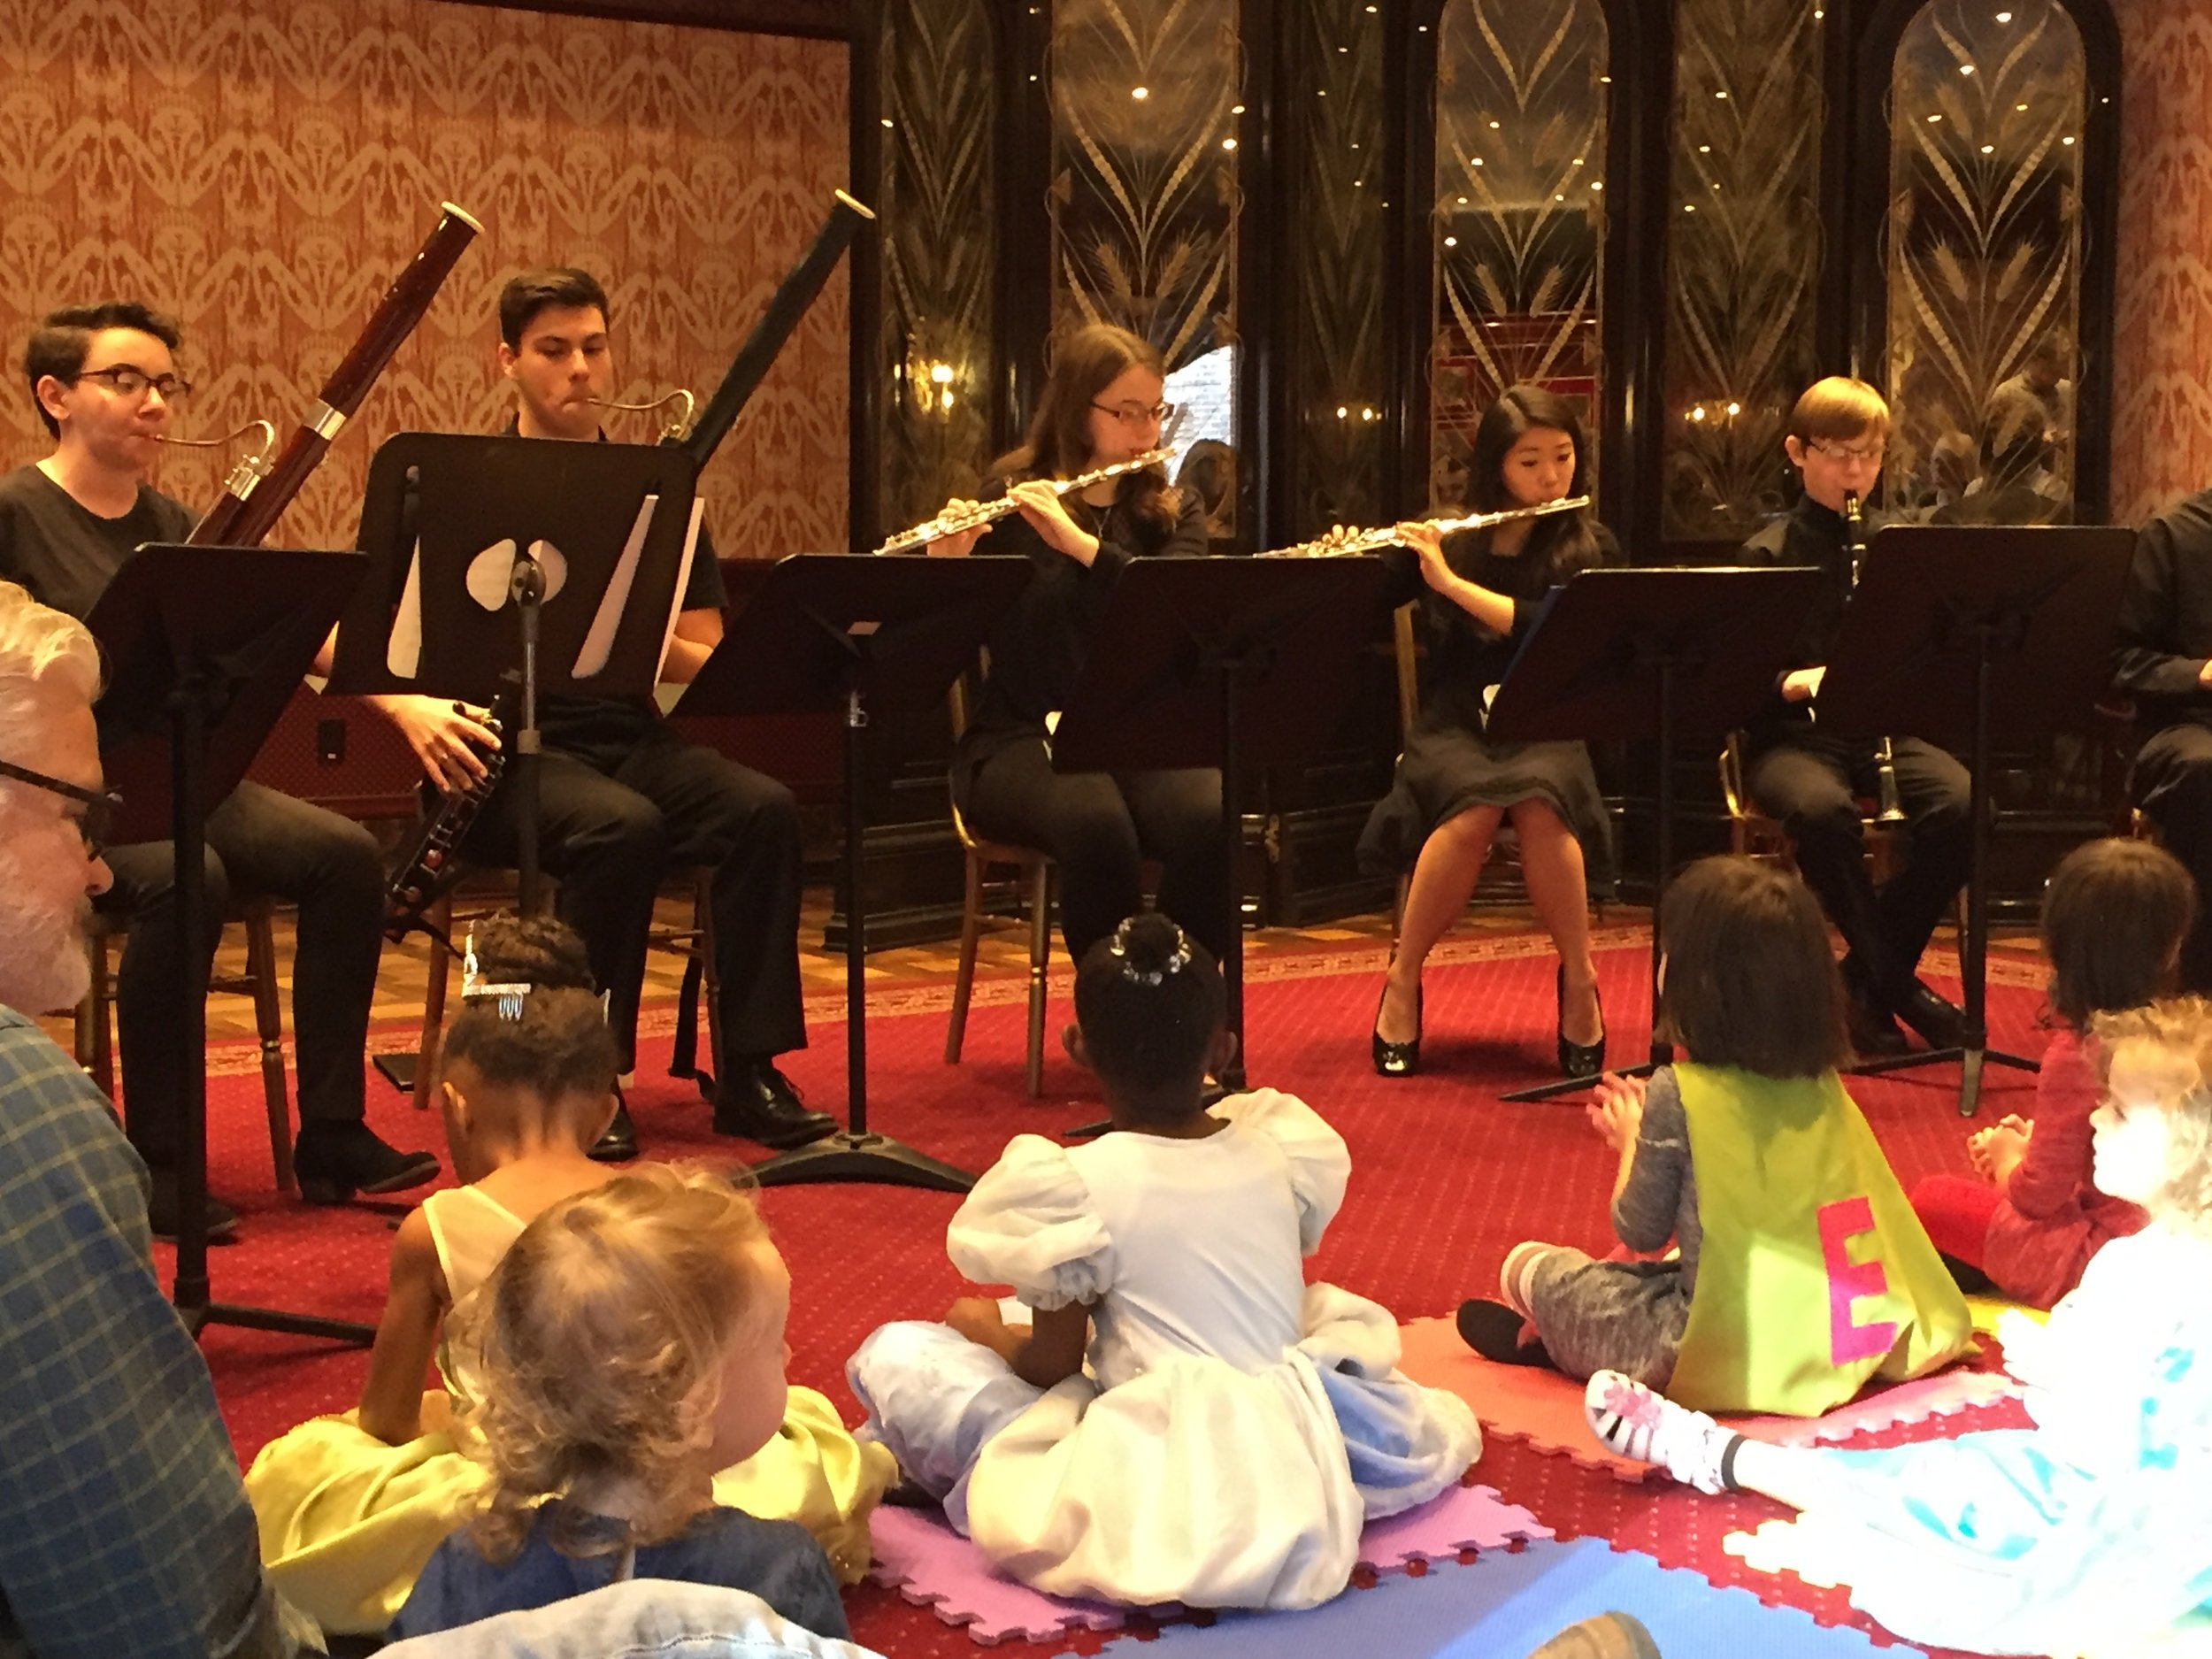 Trick-or-Treat Classical Crawl! - Saturday, October 26, 2019 - 5:30-7:00pmLocation: Third Presbyterian Church, 5701 Fifth Ave, 15232 (Shadyside - corner of Fifth & Negley Avenues)A free event for families with young children. Enjoy 25 musical treats - performances by members of the Youth Chamber Connection, Pittsburgh Youth Symphony Orchestra, and Three Rivers Young Peoples Orchestras - as you go room to room. Tell your friends and plan to visit! Costumes encouraged, but are optional.All Ages Welcome! Costume Contest! Free Admission!